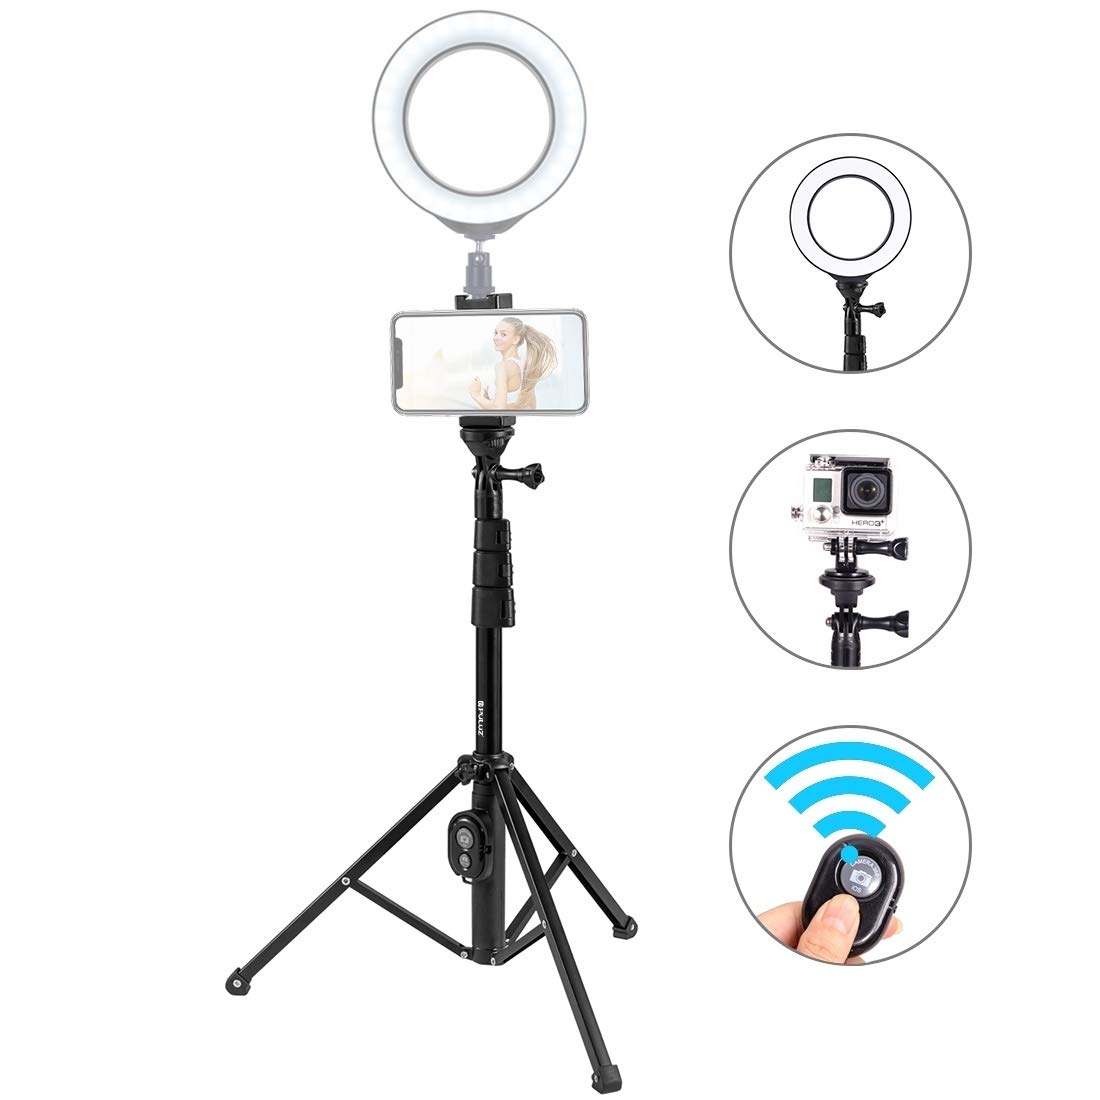 XIAOMIN Bluetooth Shutter Remote Selfie Stick Tripod Mount Holder for Vlogging Live Broadcast Premium Material by XIAOMIN